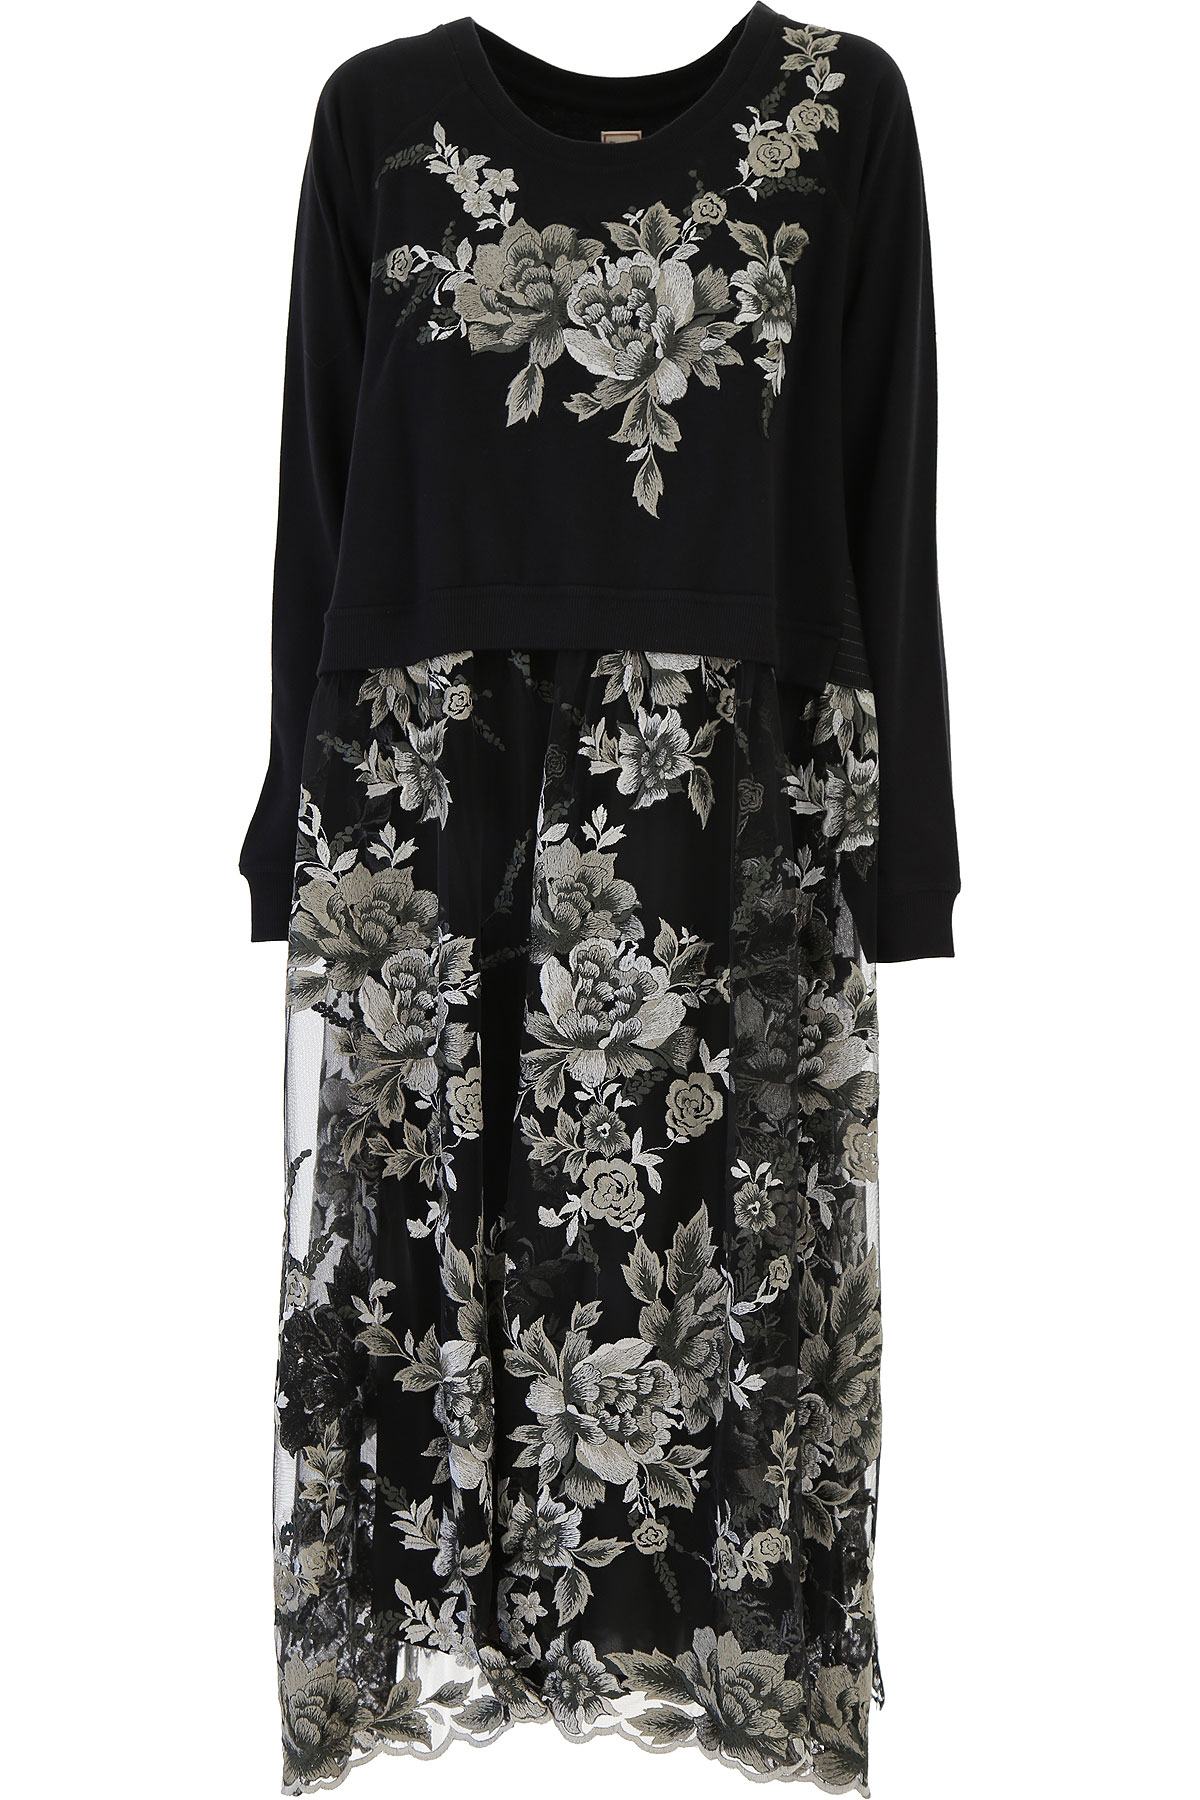 Antonio Marras Dress for Women, Evening Cocktail Party On Sale, Black, viscosa, 2019, 1 (S - 40/42) 2 (M - 42/44)